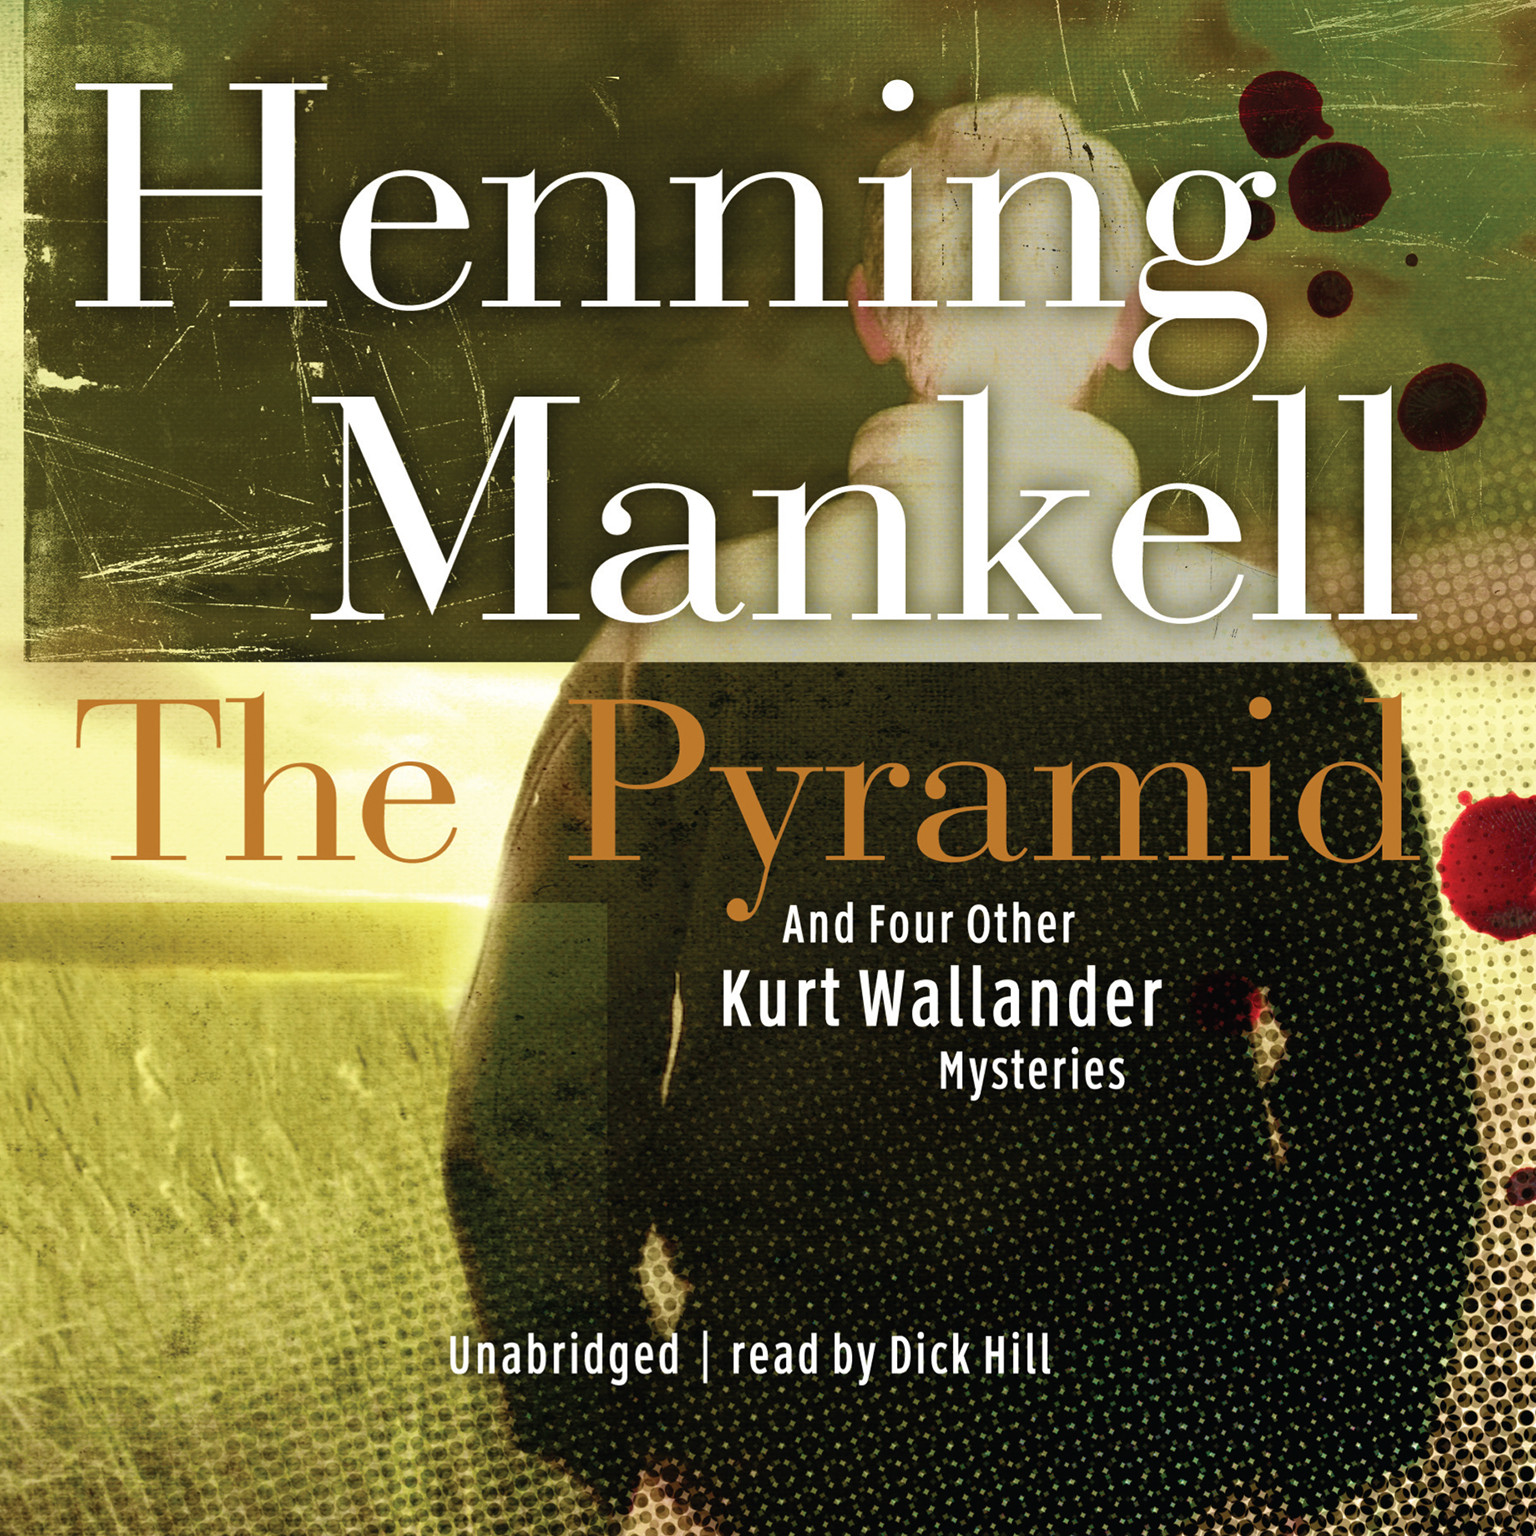 Printable The Pyramid: And Four Other Kurt Wallander Mysteries Audiobook Cover Art